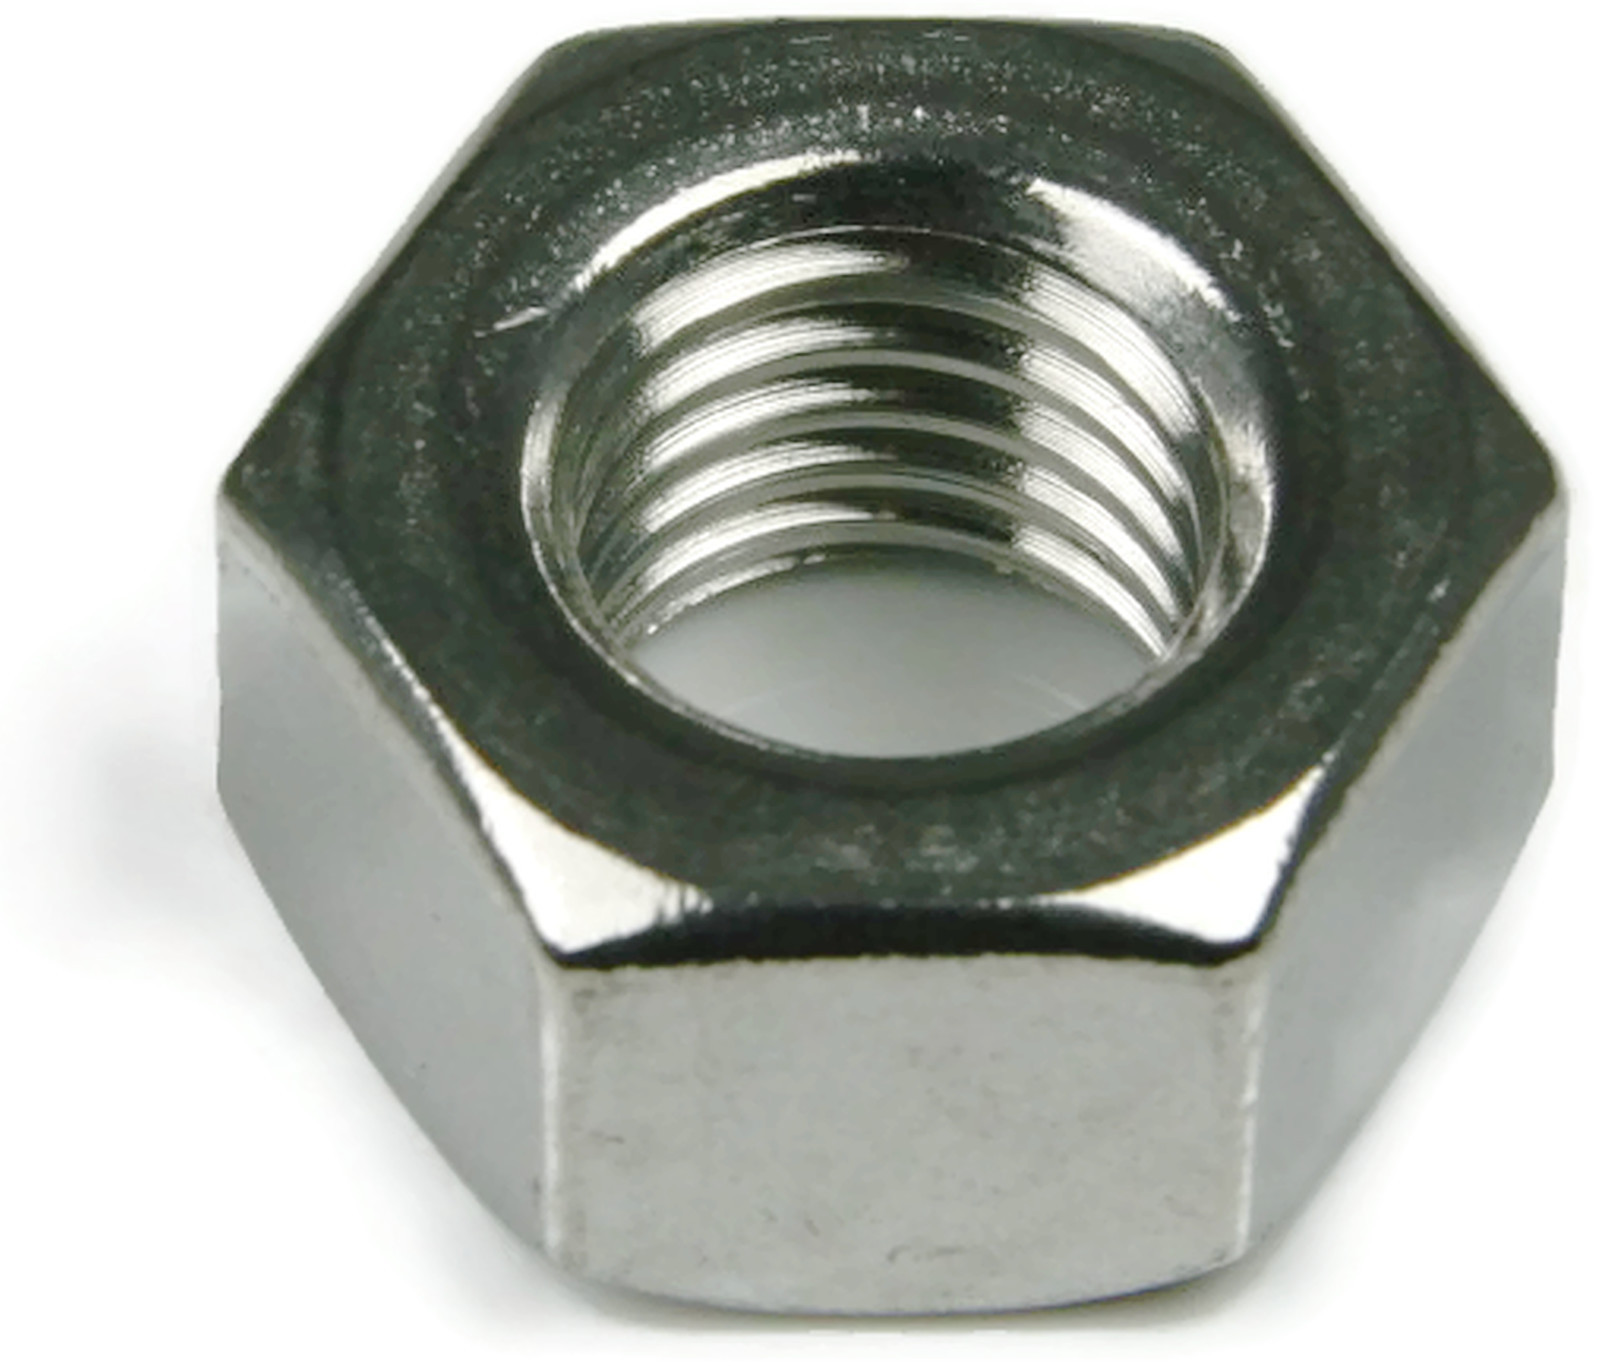 Qty-100 3//8-16 9//16 Flats x 21//64 Thick Hex Finish Nuts 18-8 Stainless Steel